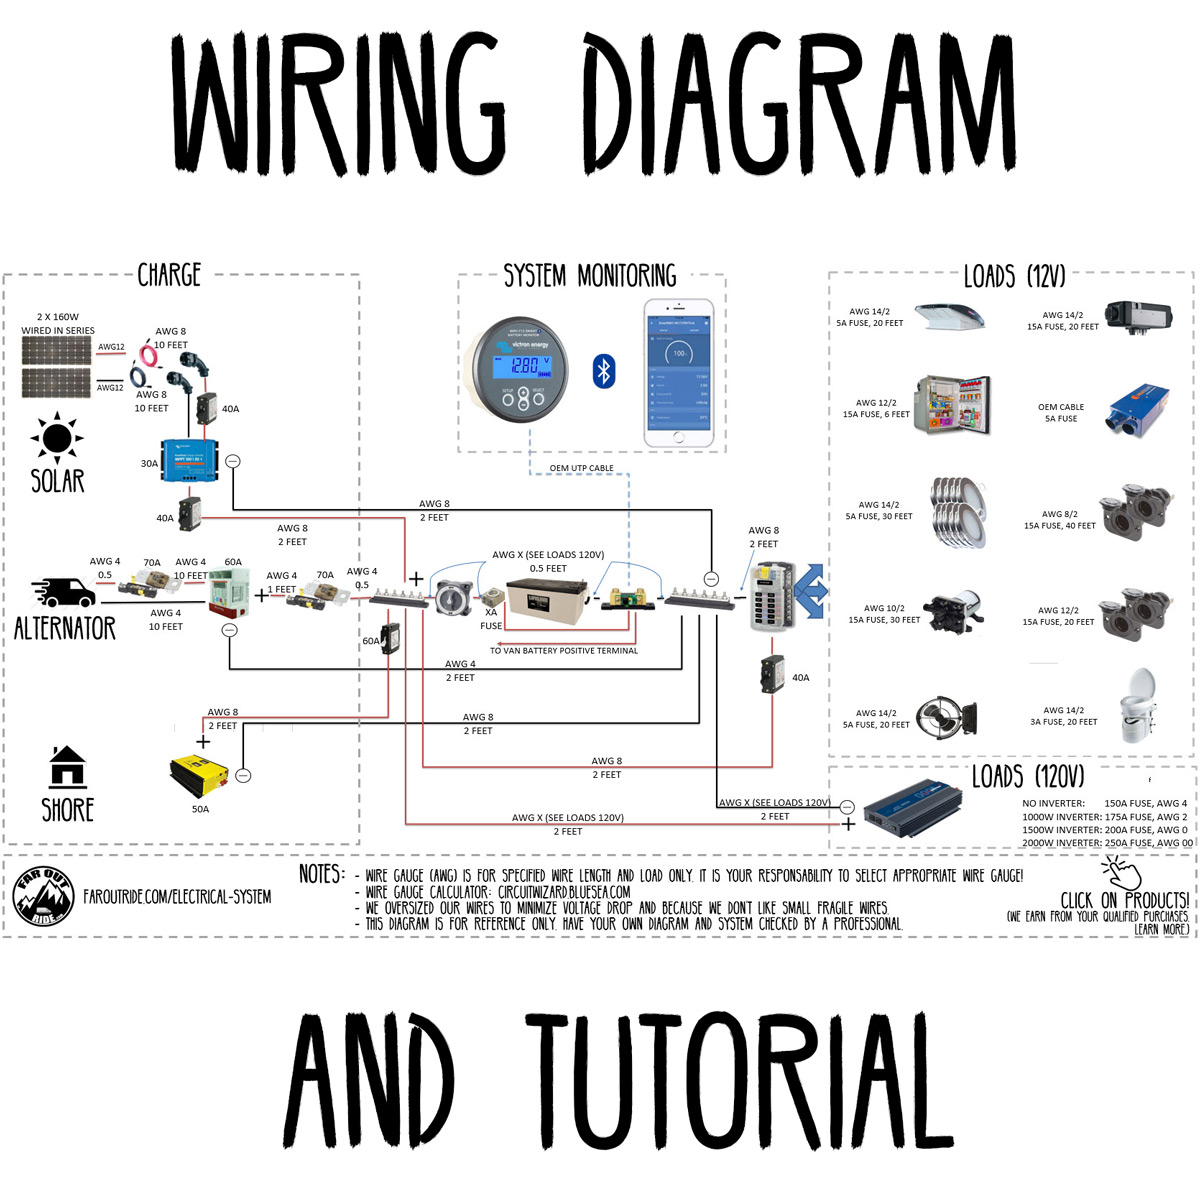 Intercity Product Wiring Diagram Wire Center \u2022 Furnace Fan Diagram  Intercity Furnace Wiring Diagram